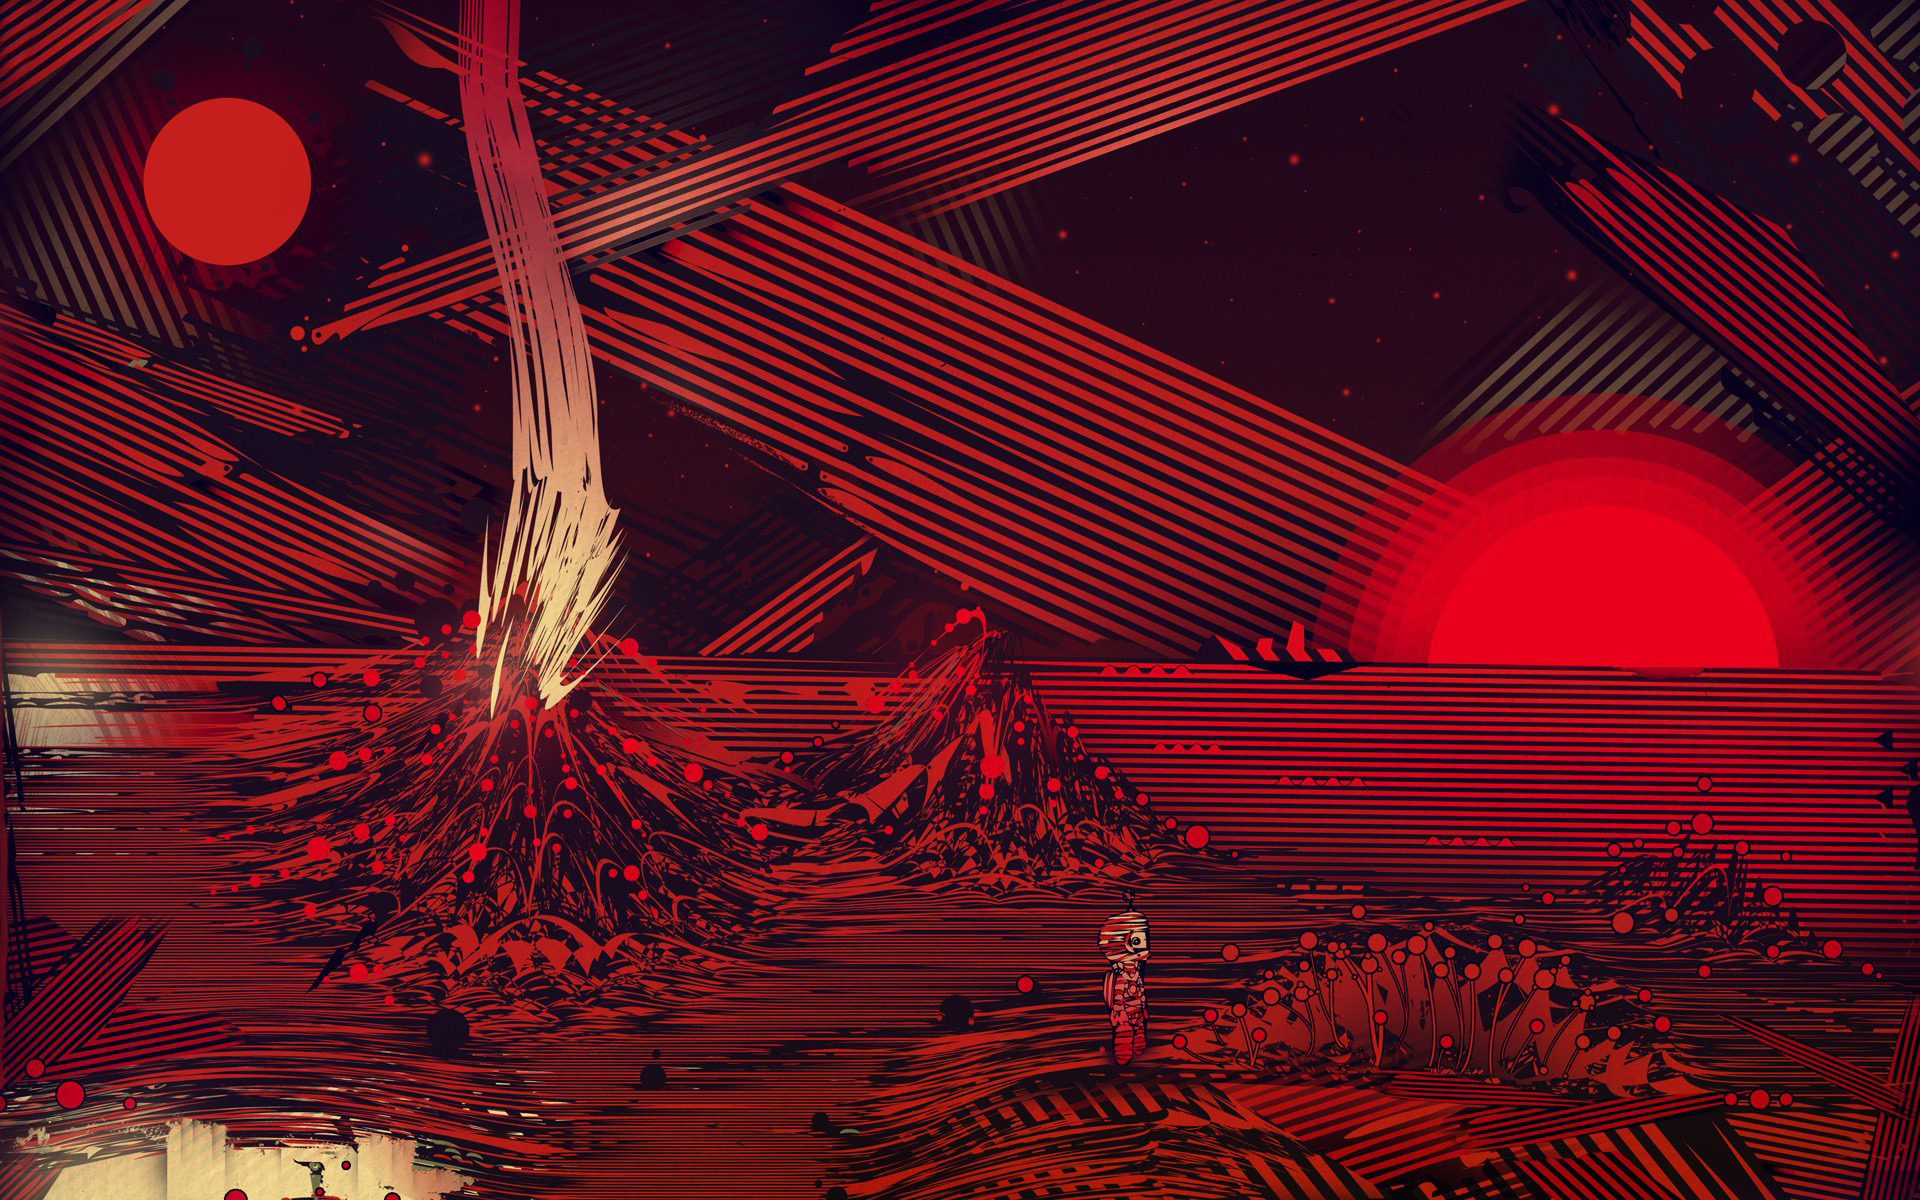 Red striped planet